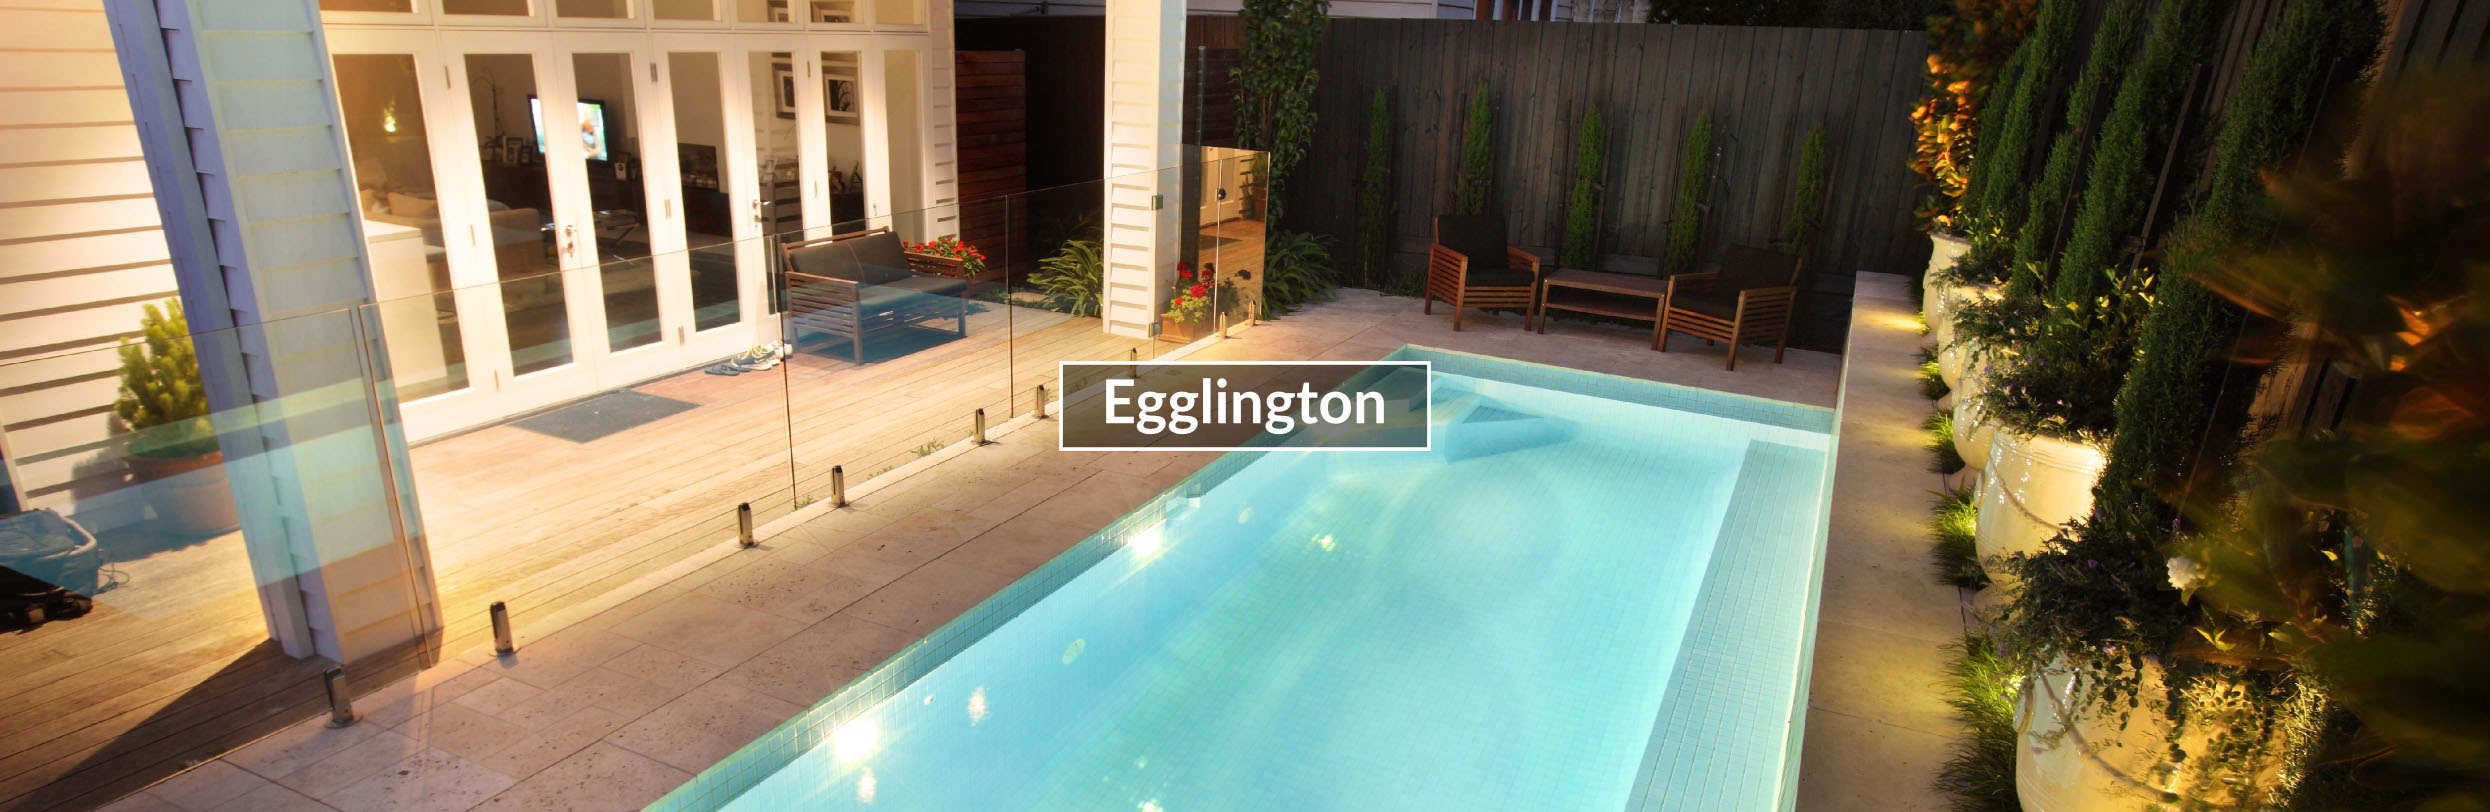 Eglinton - Kiama Pools Small Swimming Pool Project